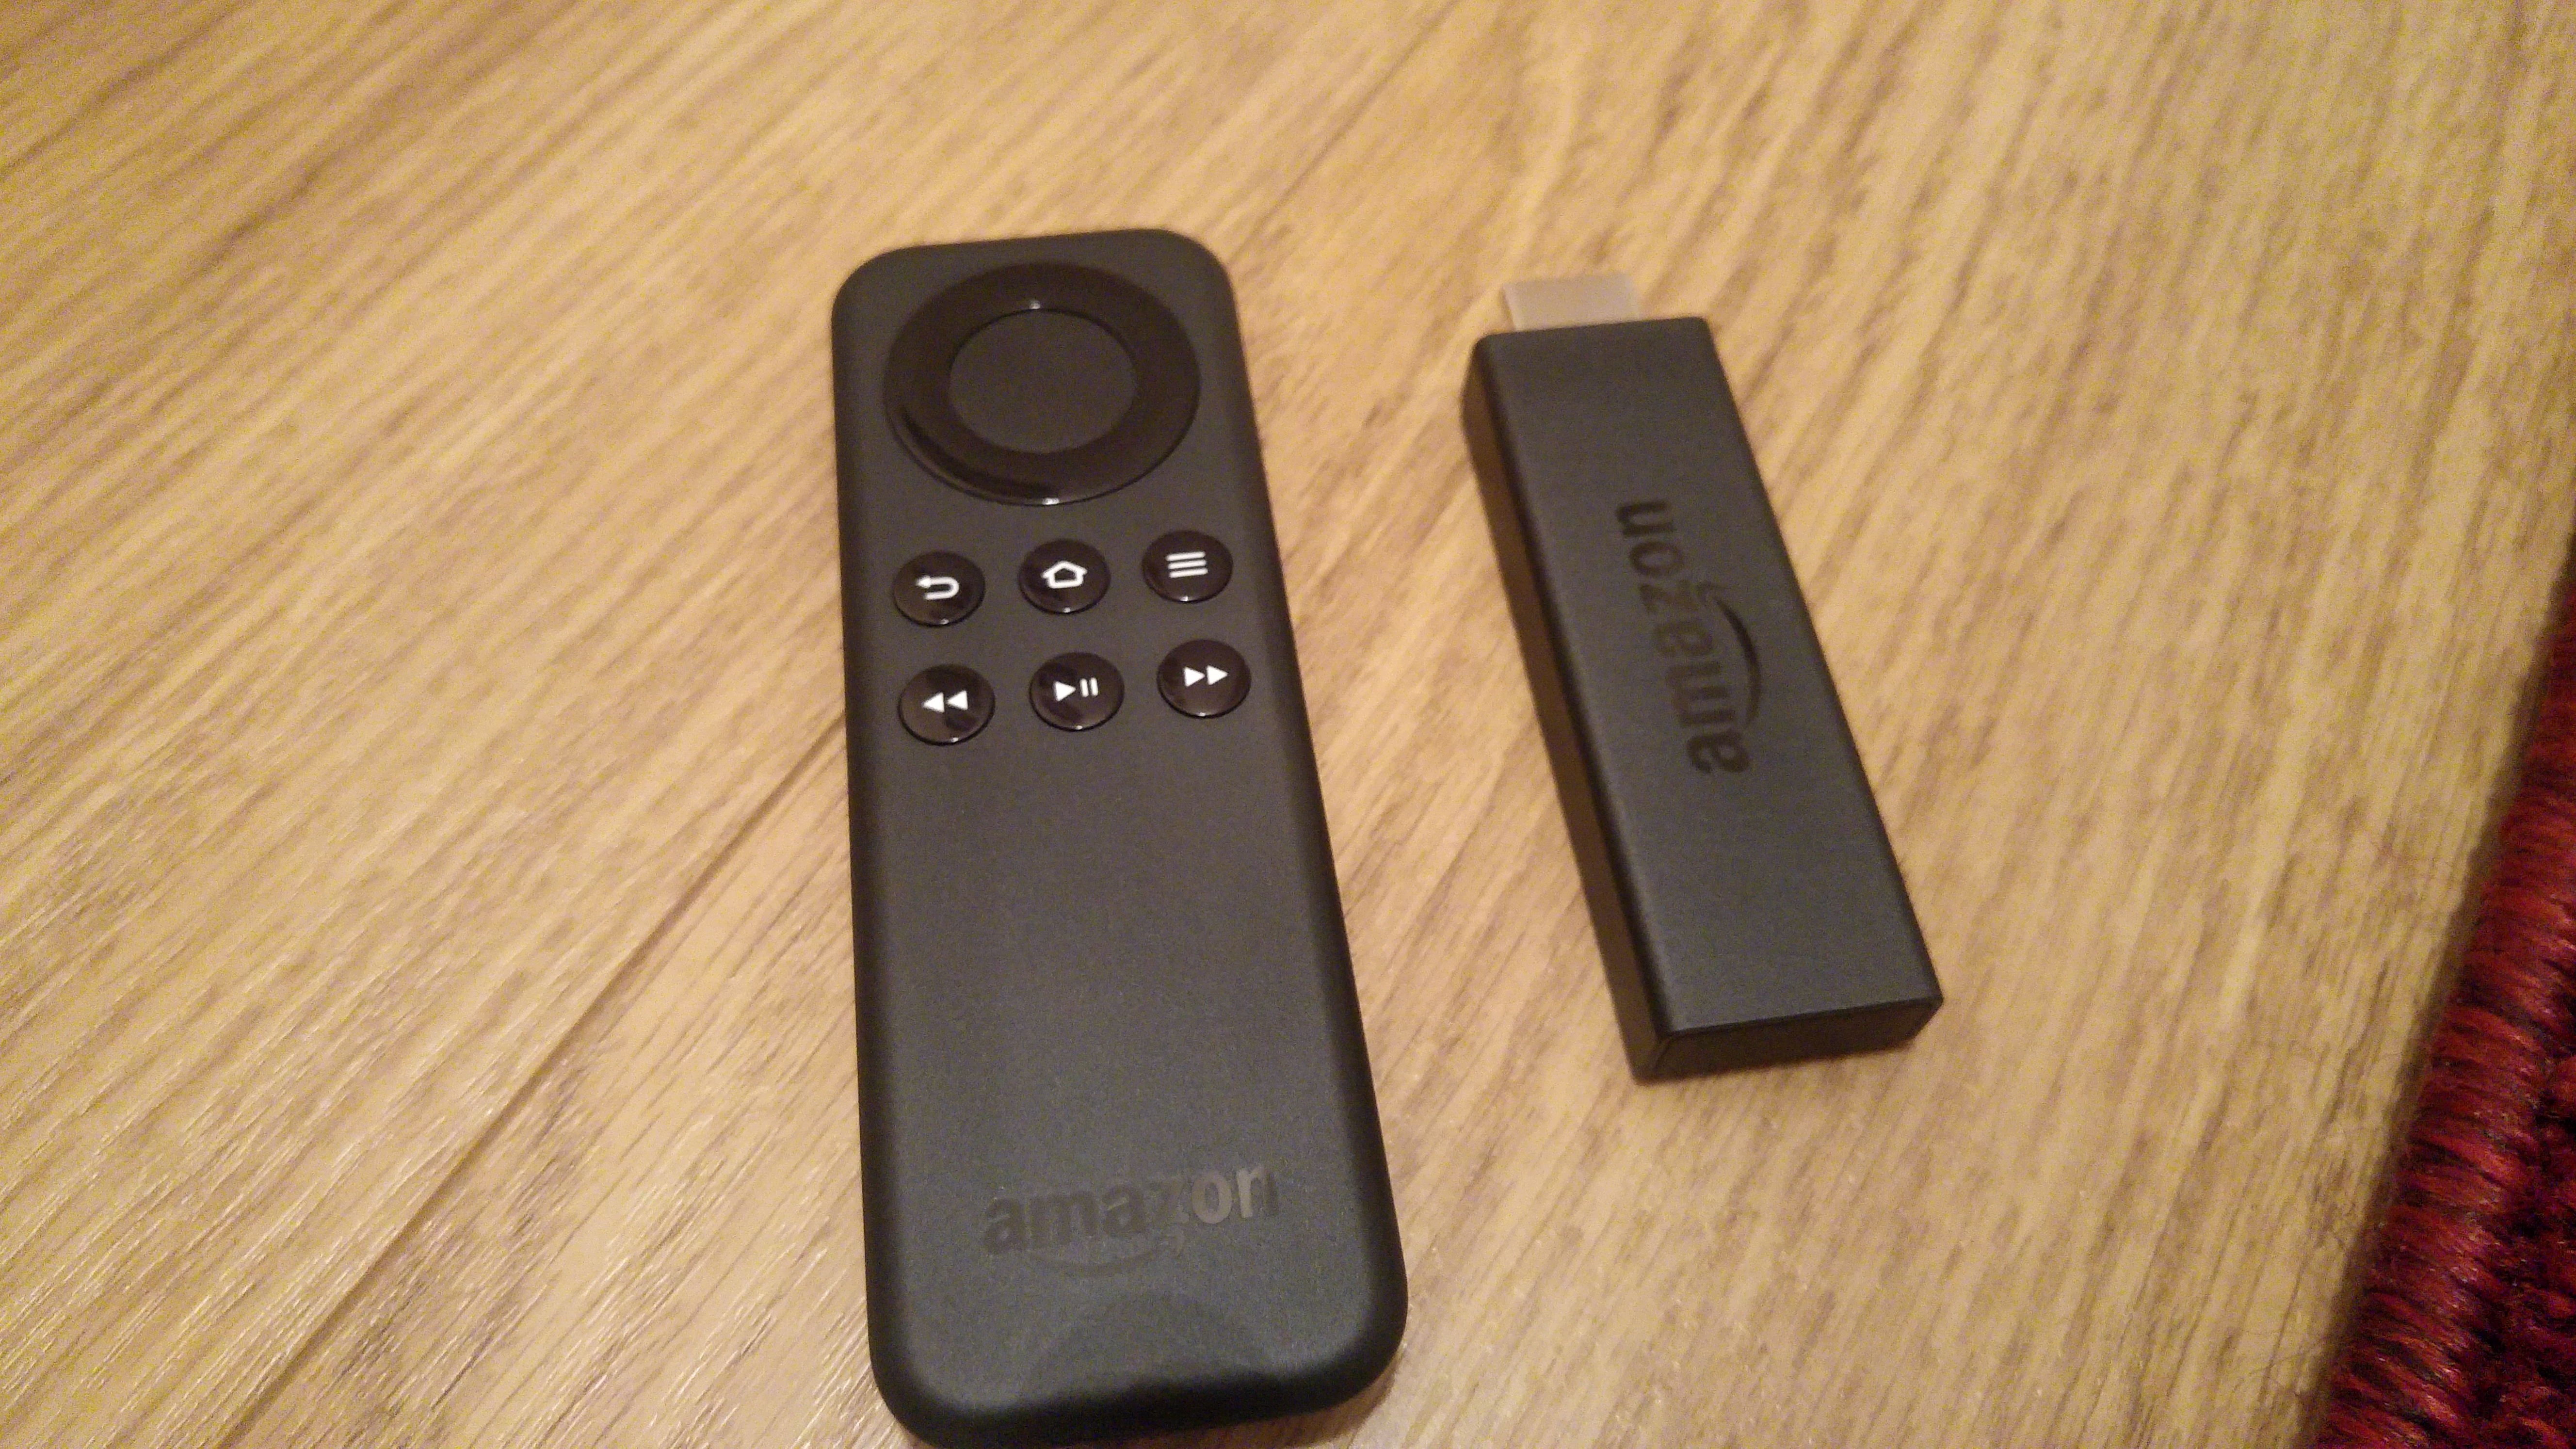 The other reason people are buying an Amazon Fire TV Stick